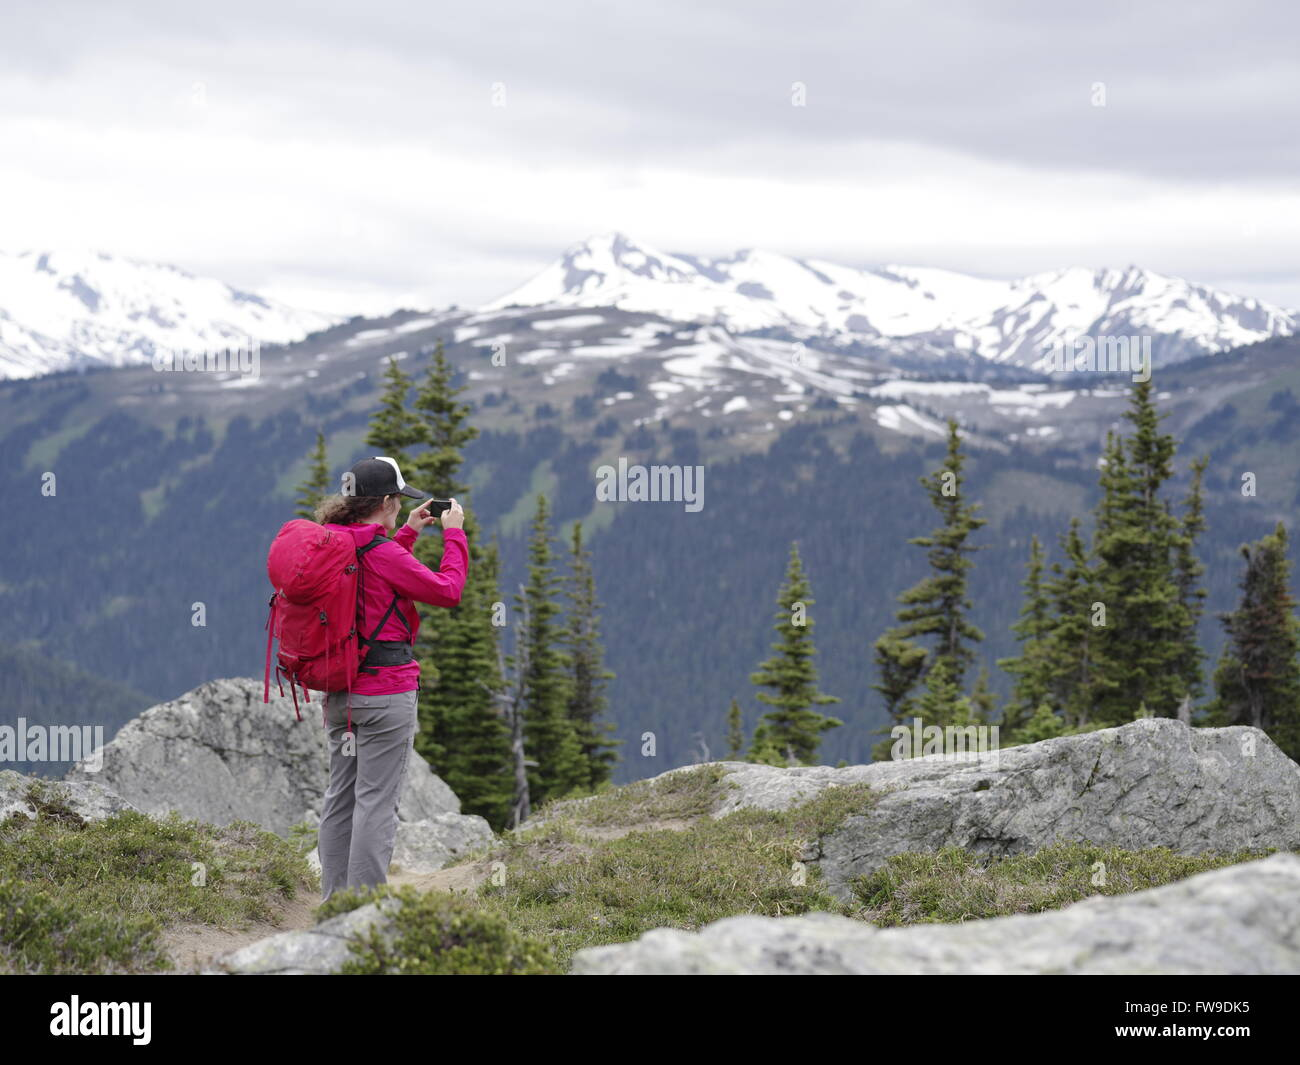 A young female hiker on mountain summit holding a smart phone in Whistler Blackcomb alpine hike, BC, Canada Stock Photo